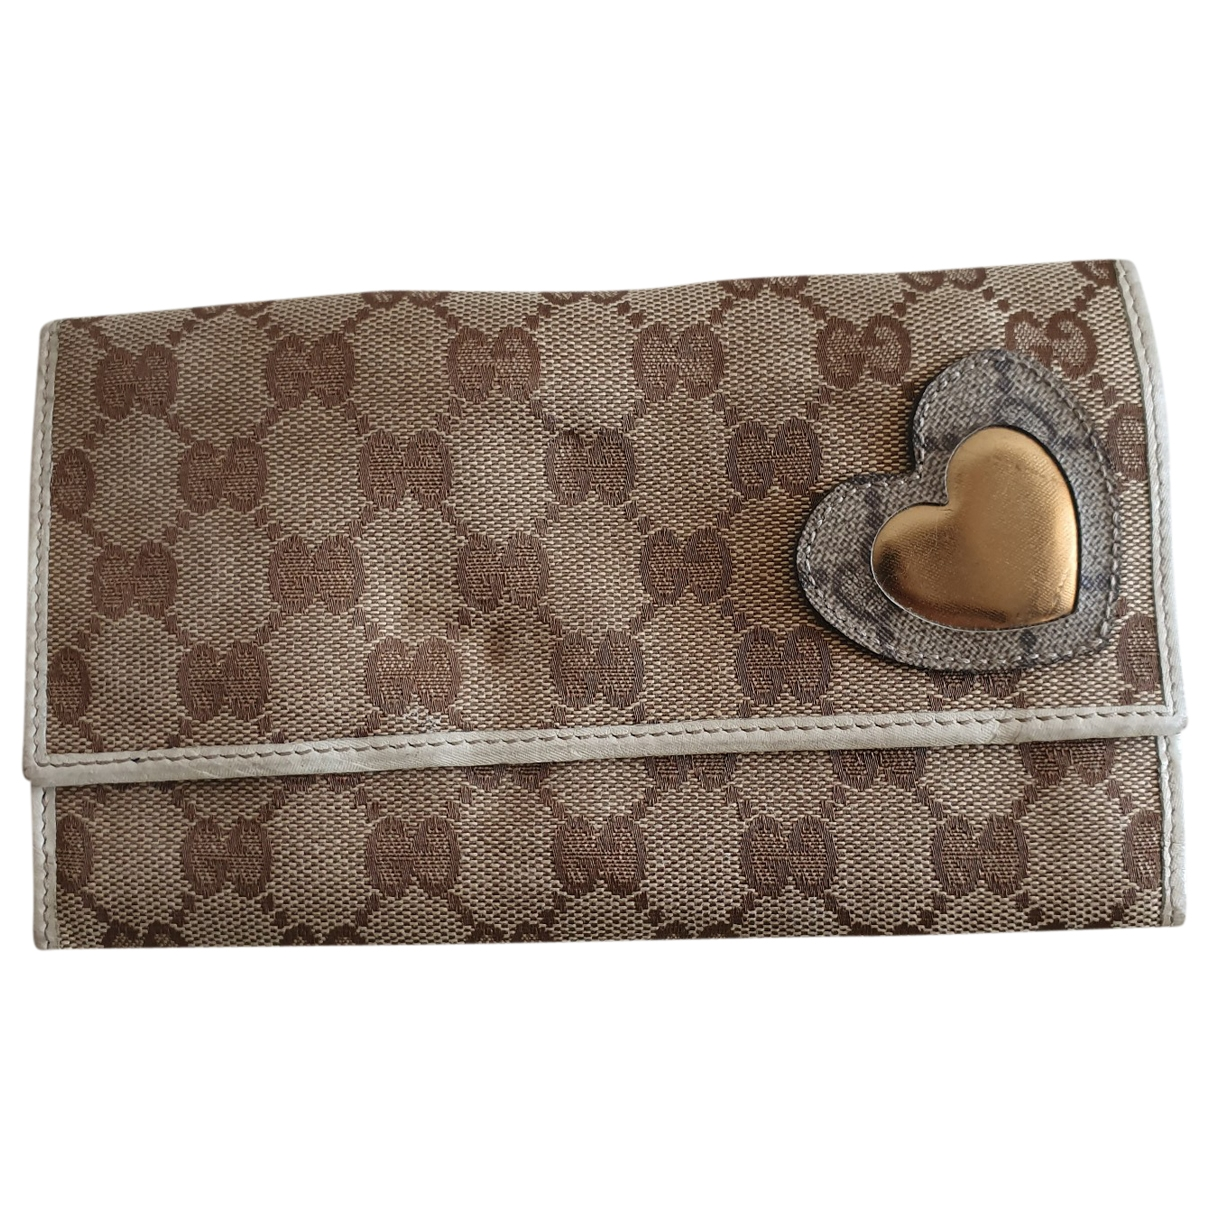 Gucci \N Beige Cloth wallet for Women \N